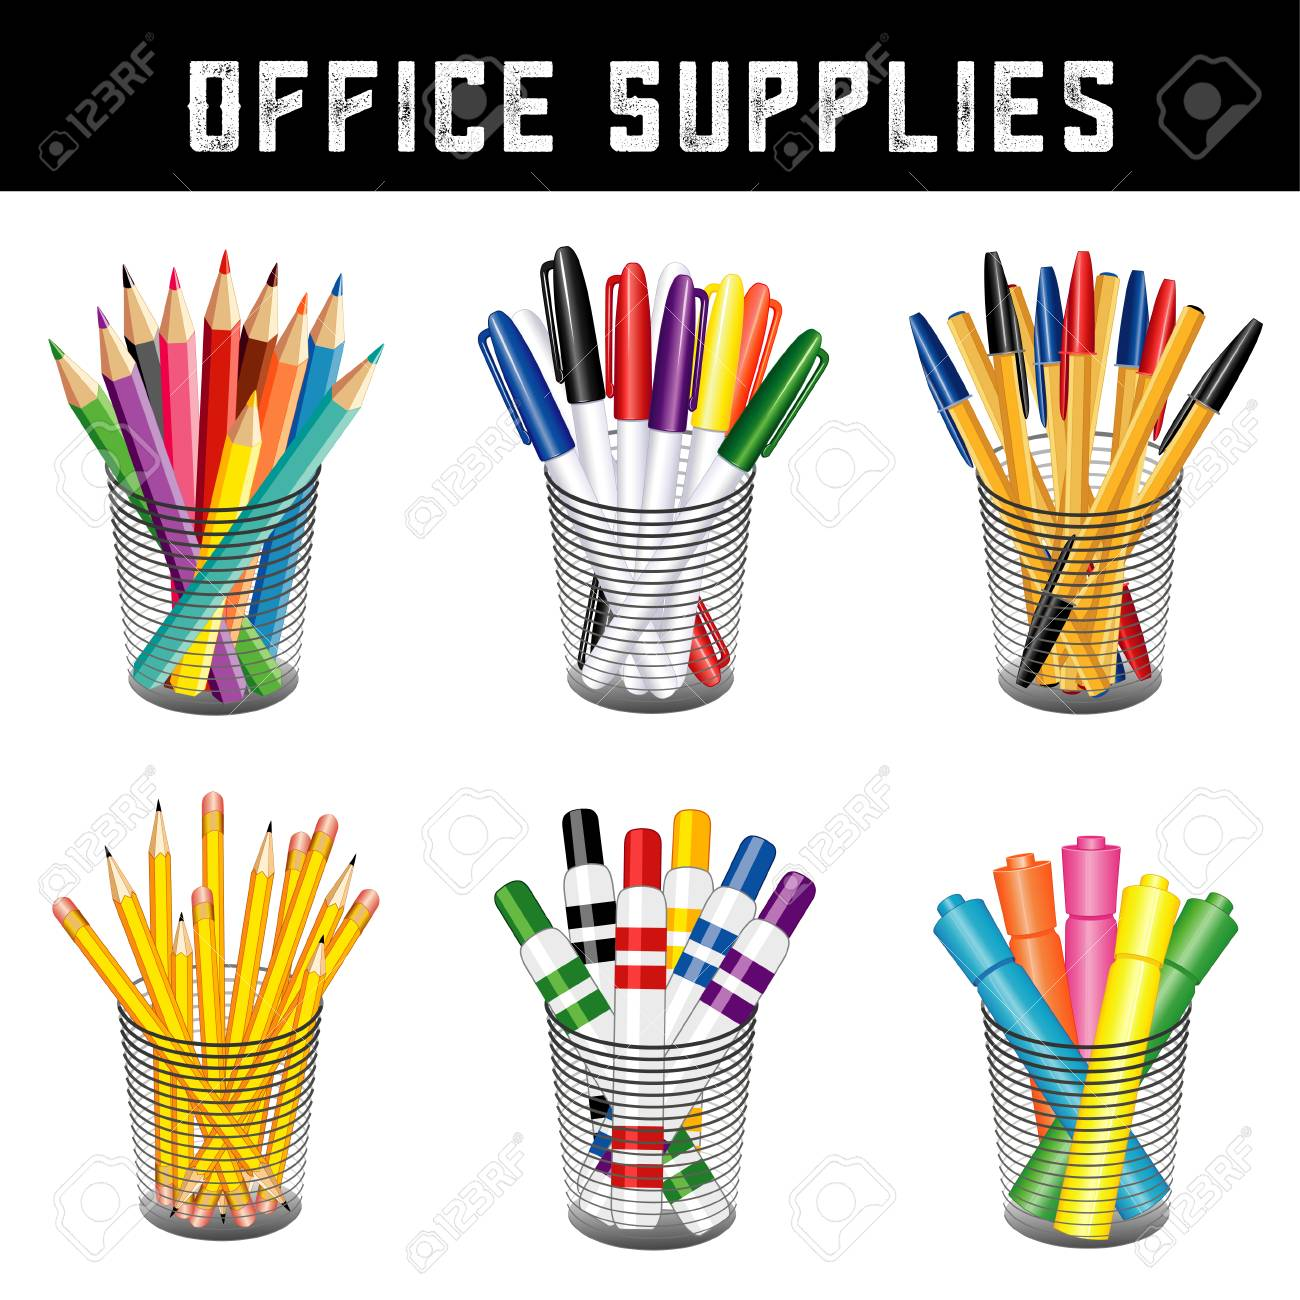 Office Supplies, Writing And Drawing Tools In Desk Organizers For Office,  Home And Back